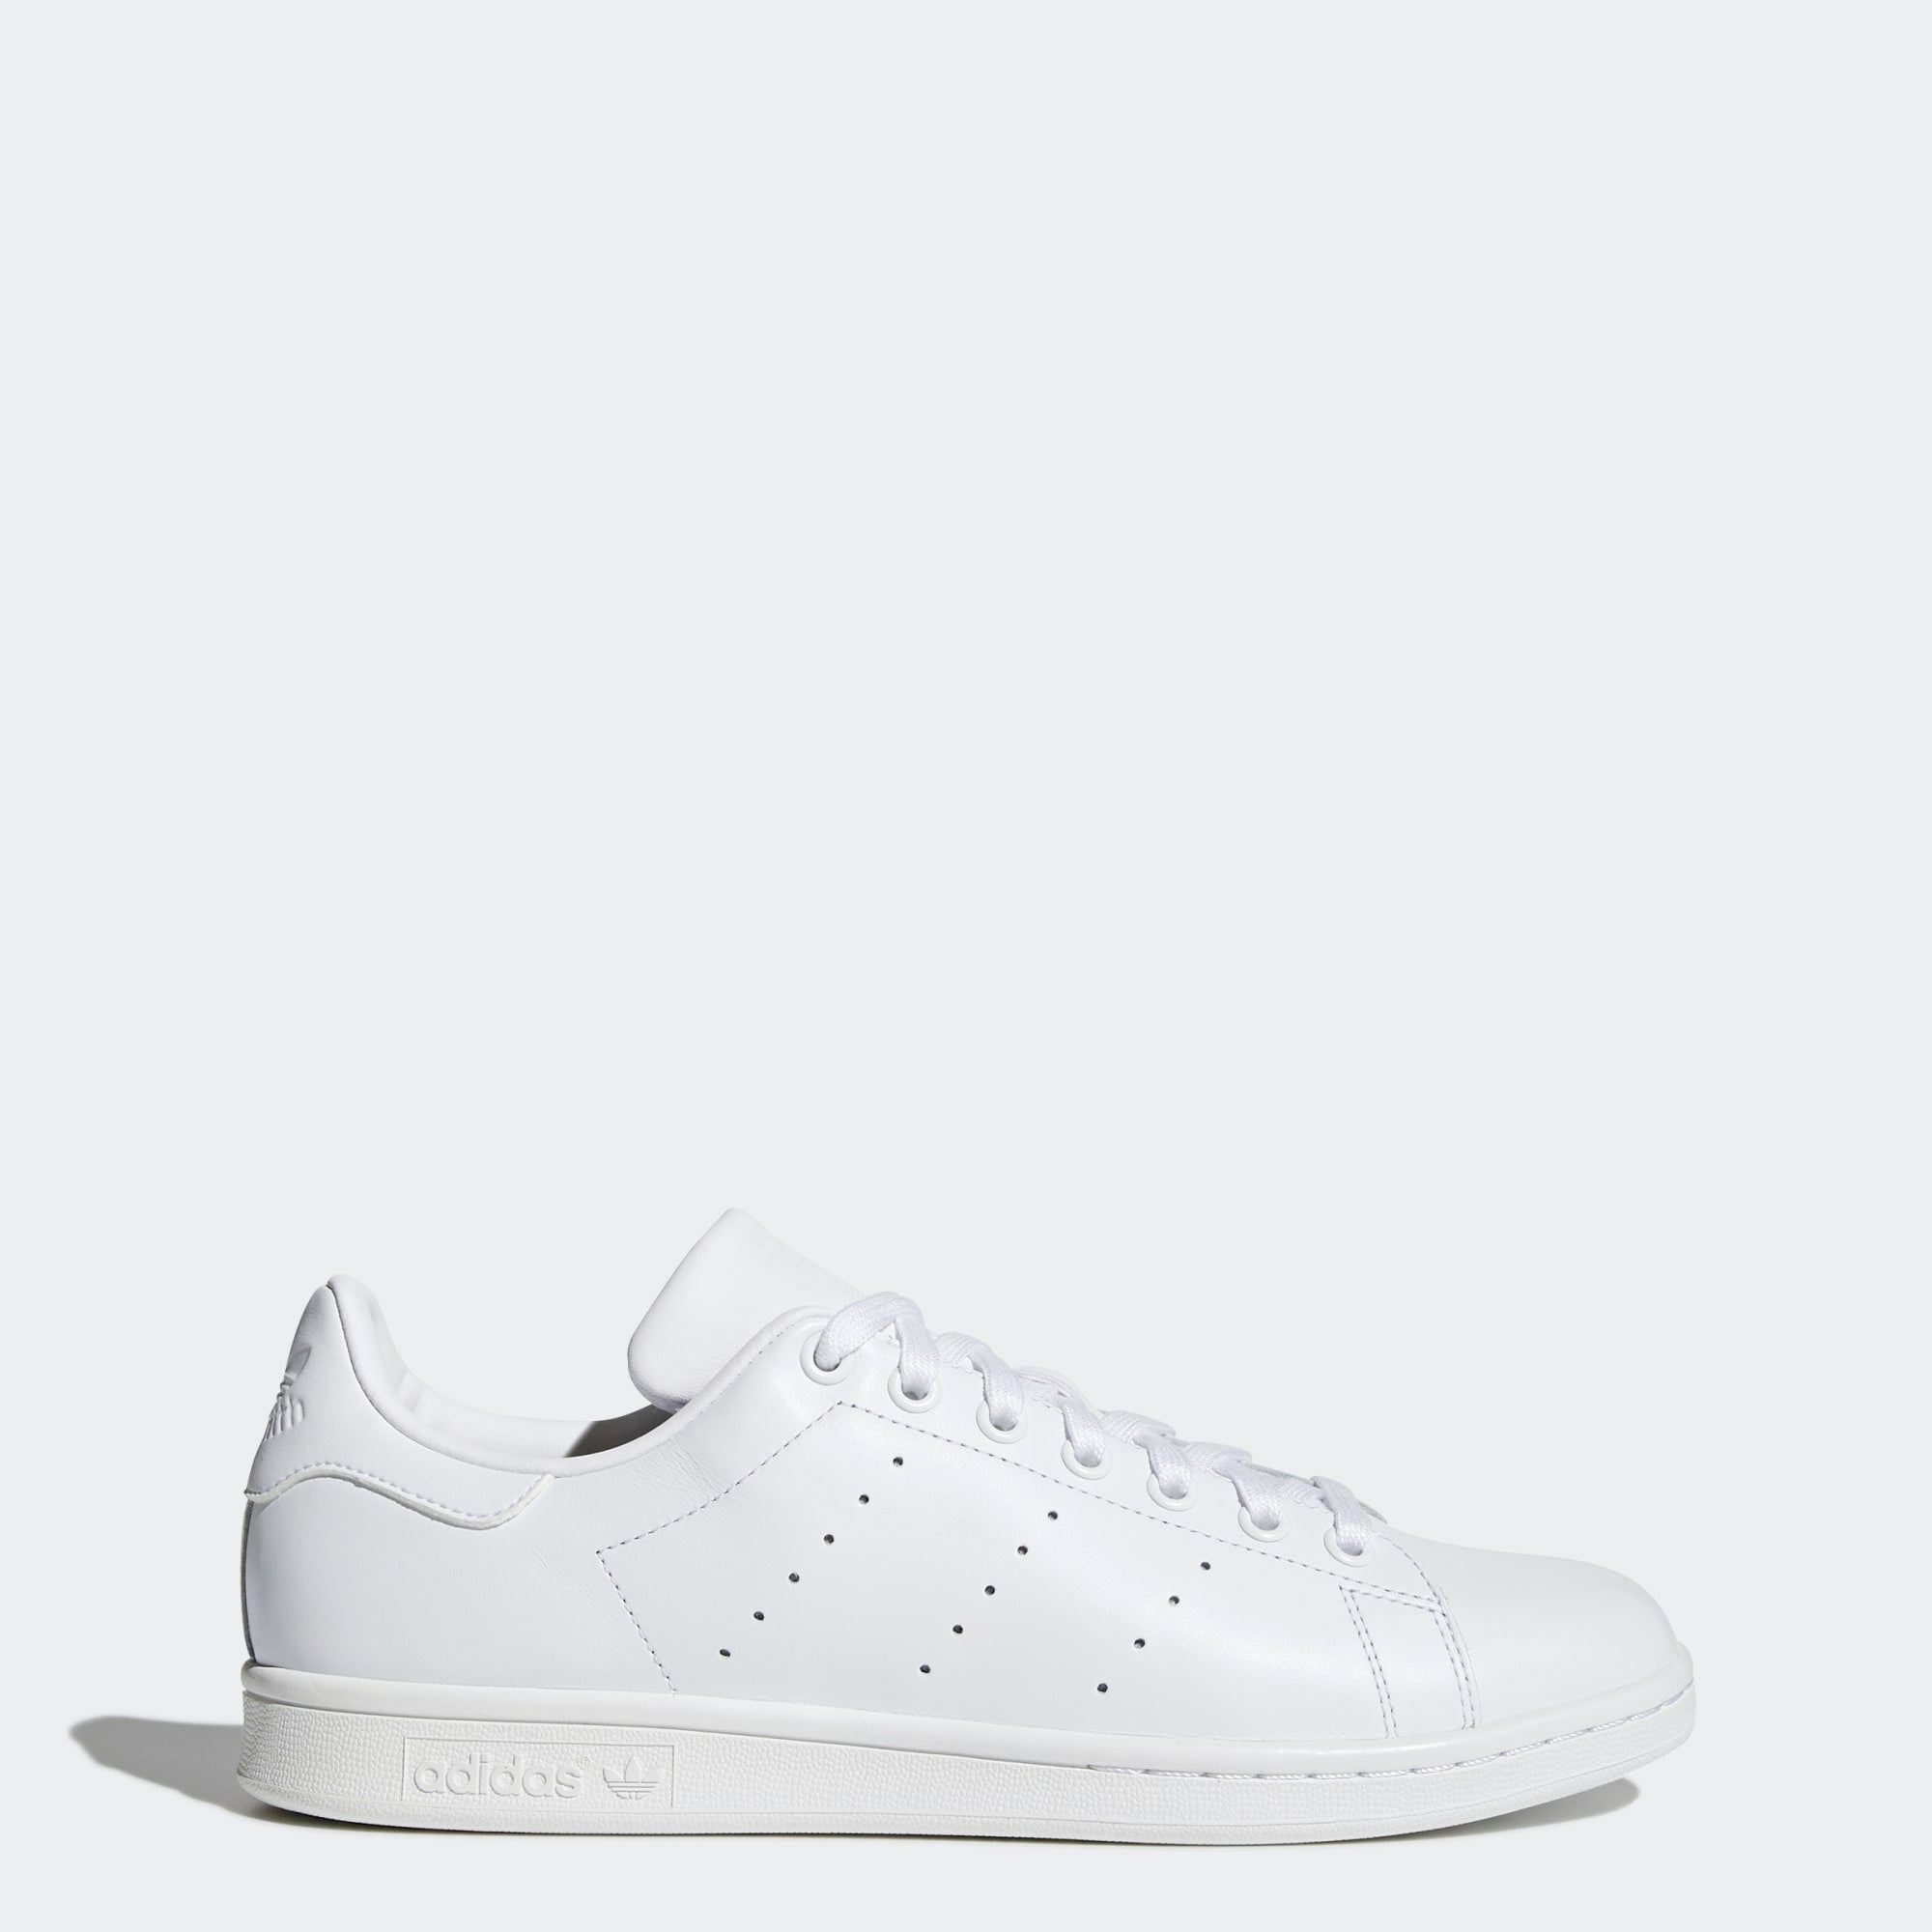 brand new 43898 5bc32 adidas Stan Smith Shoes Triple White S75104 | Chicago City ...